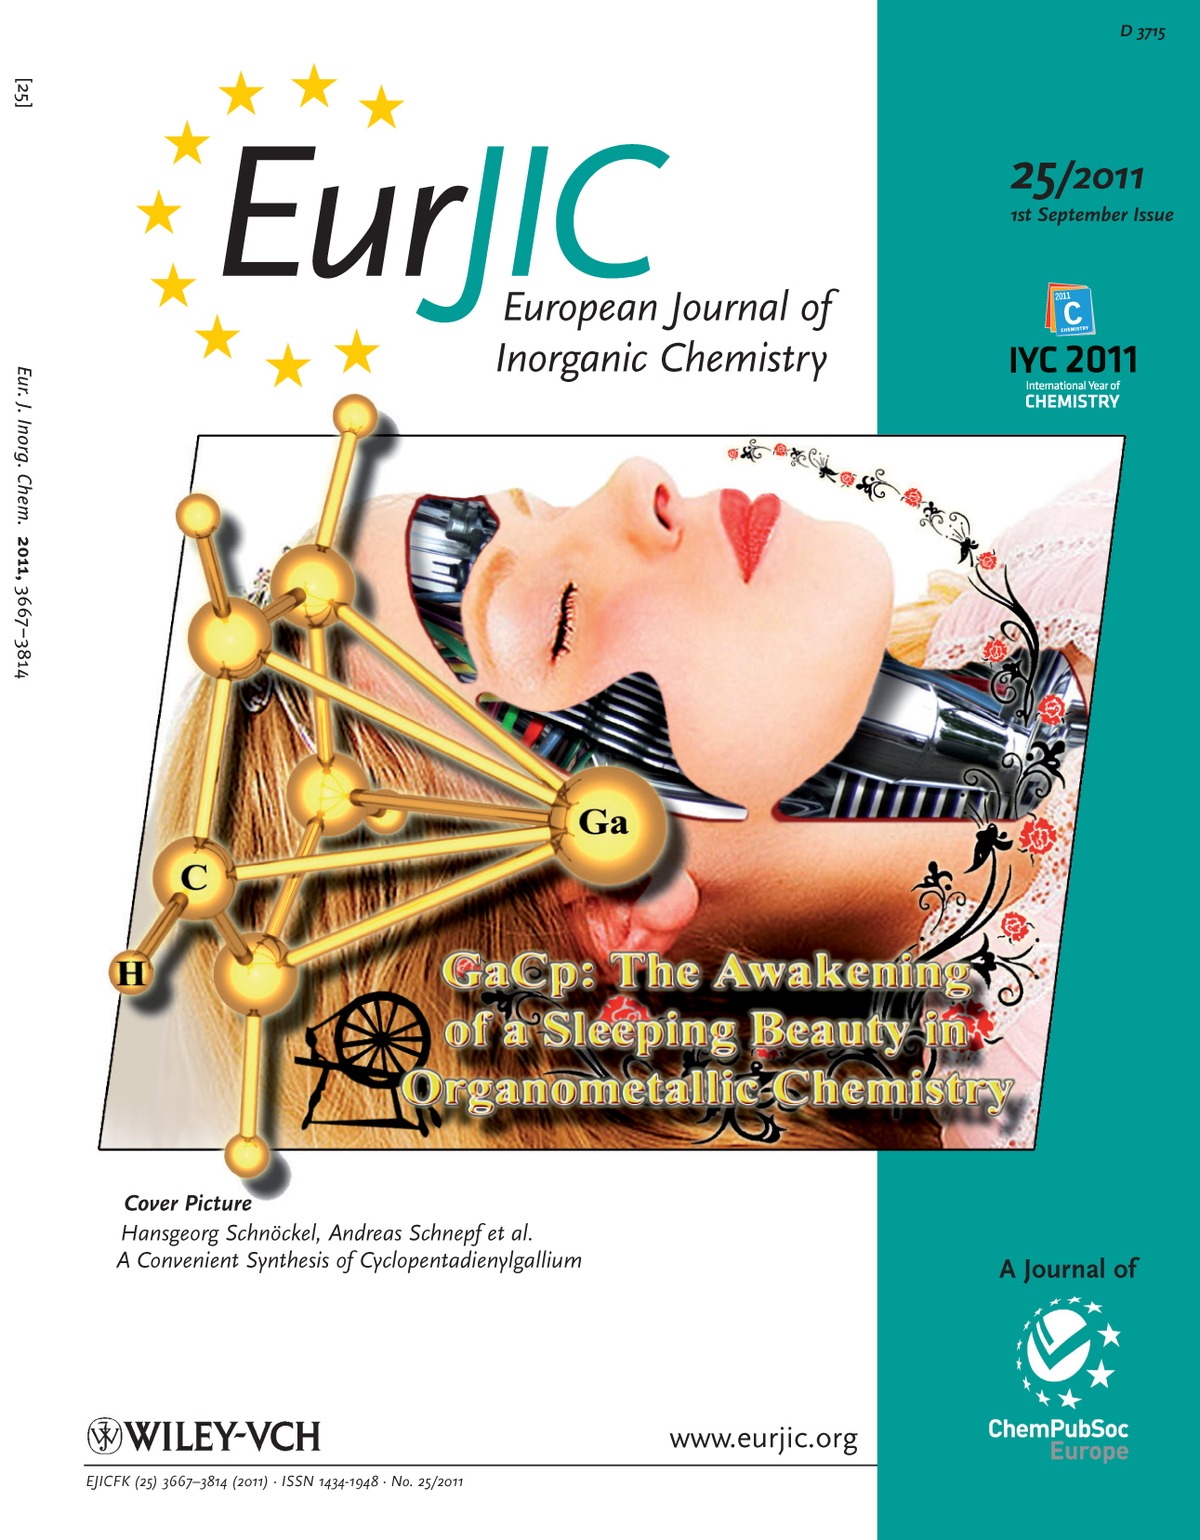 Cover Picture European Journal of Inorganic Chemistry 2011